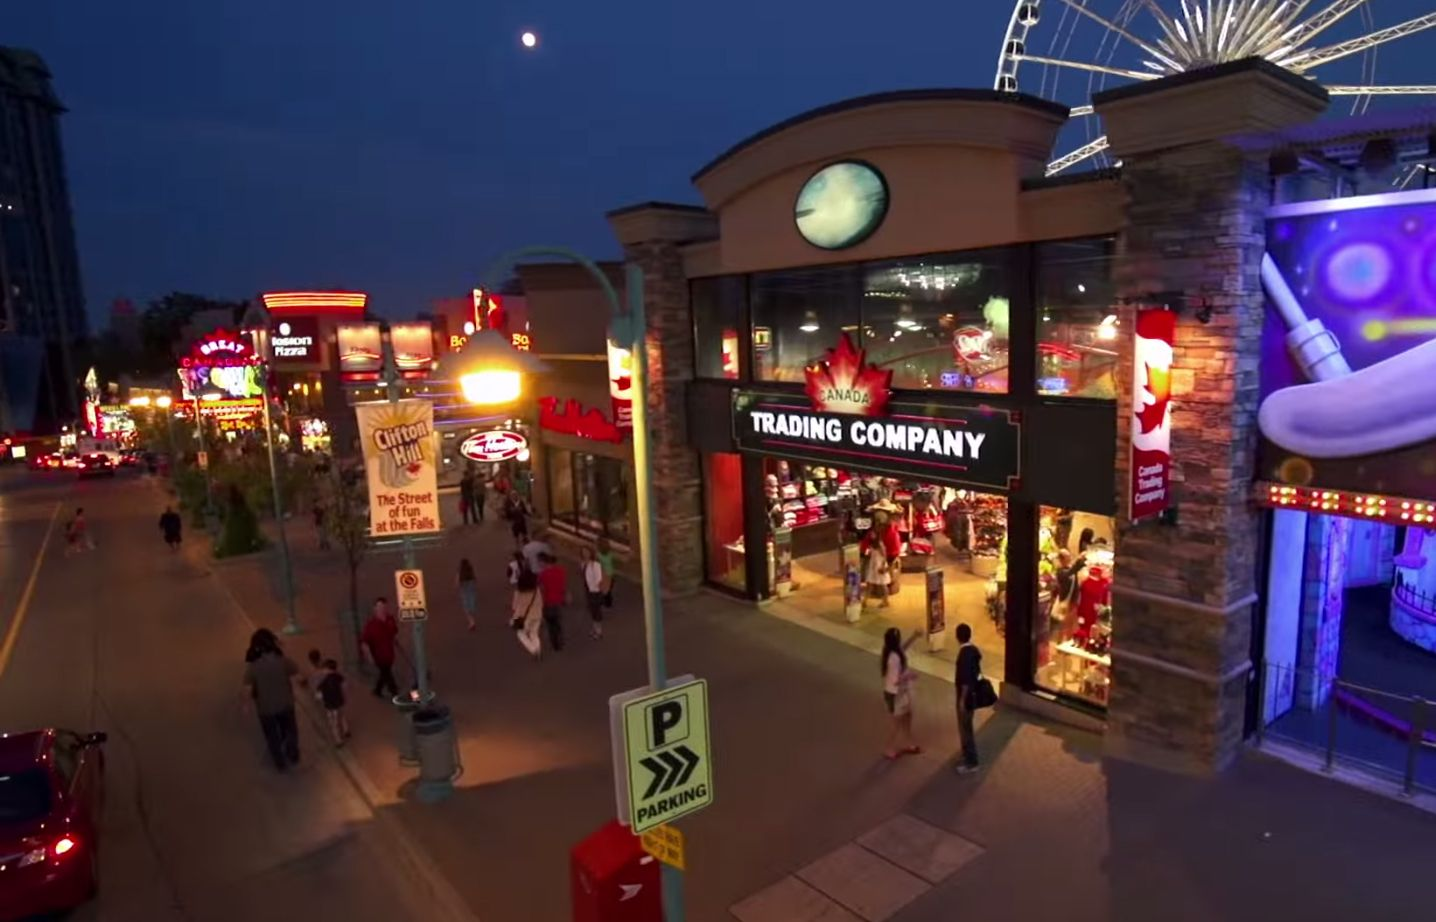 Here are the most frequently asked questions regarding Clifton Hill in Niagara Falls. #FAQs #CliftonHill #NiagaraFalls http://www.cliftonhill.com/falls_blog/clifton-hill-niagara-falls-common-faqs-answered/